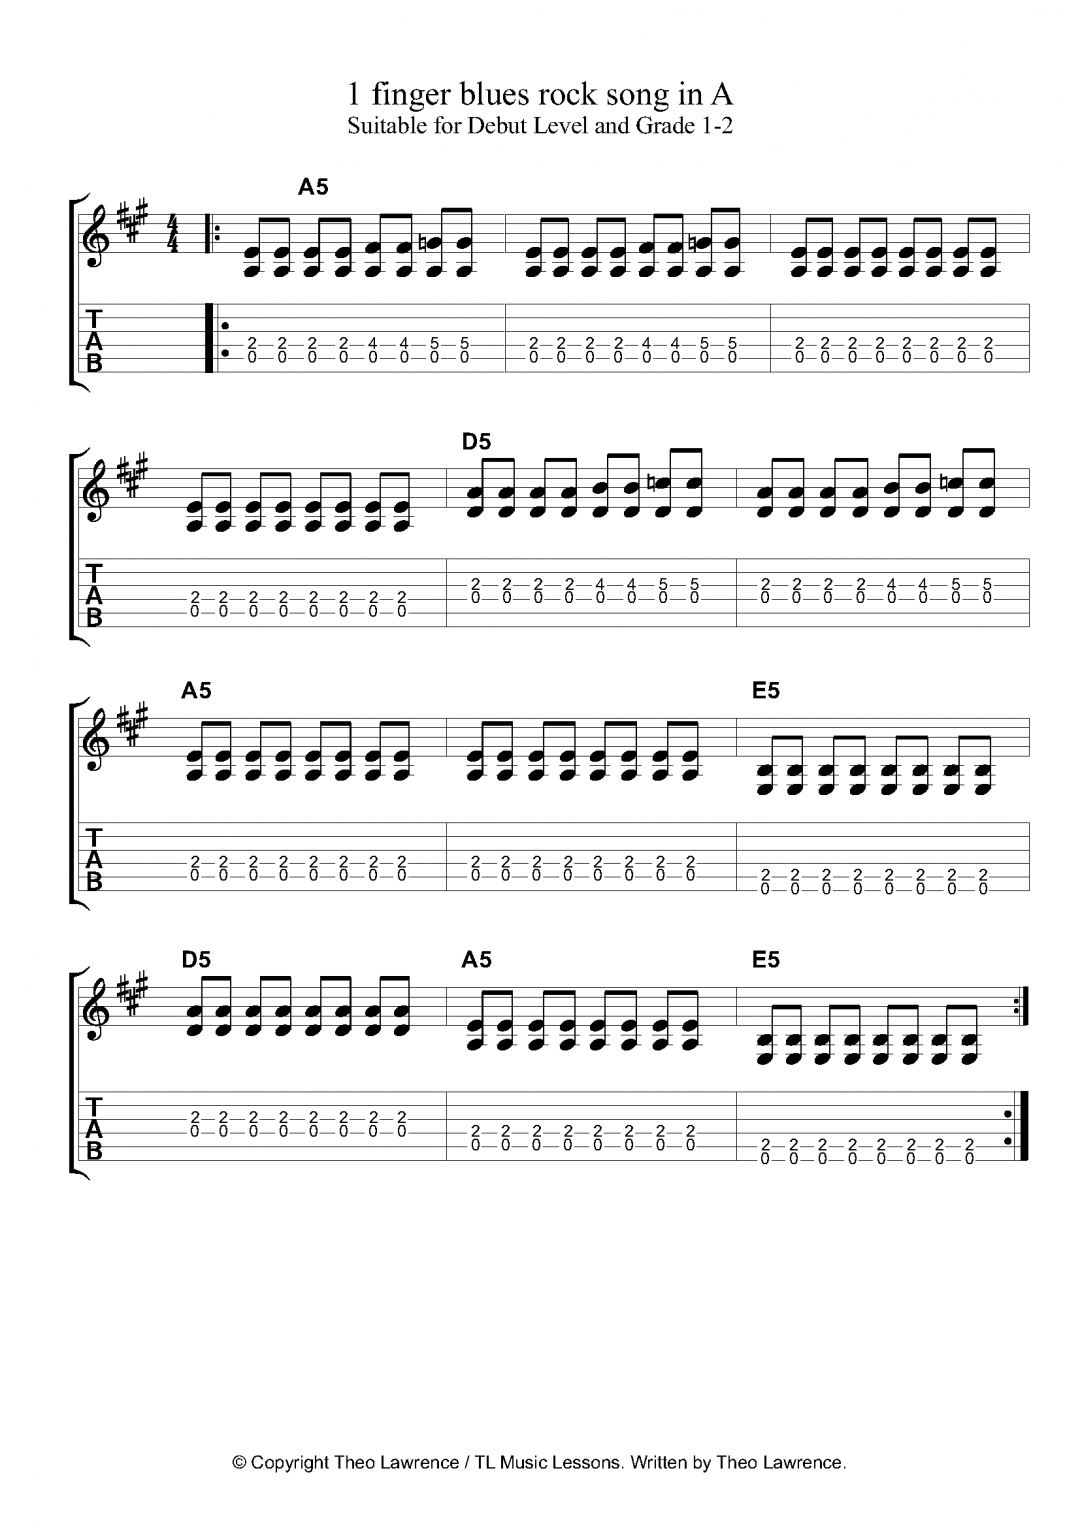 1 finger blues rock exercise in A with fret variations around the power chord shapes – for beginners